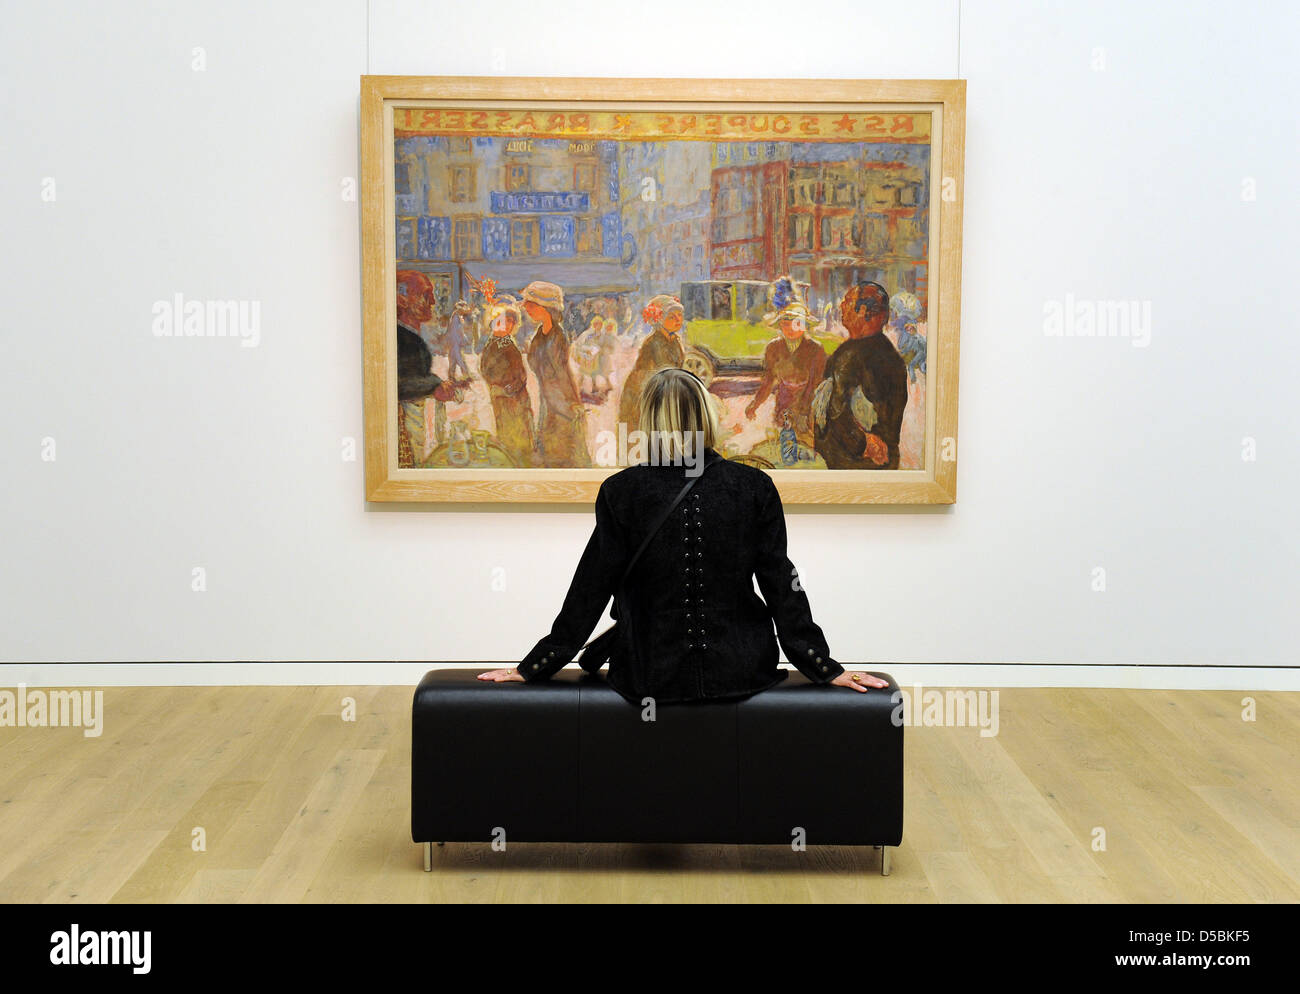 A visitor looks at the painting 'Place de Clichy' by the French 'Les Nabis' painter Pierre Bonnard - Stock Image